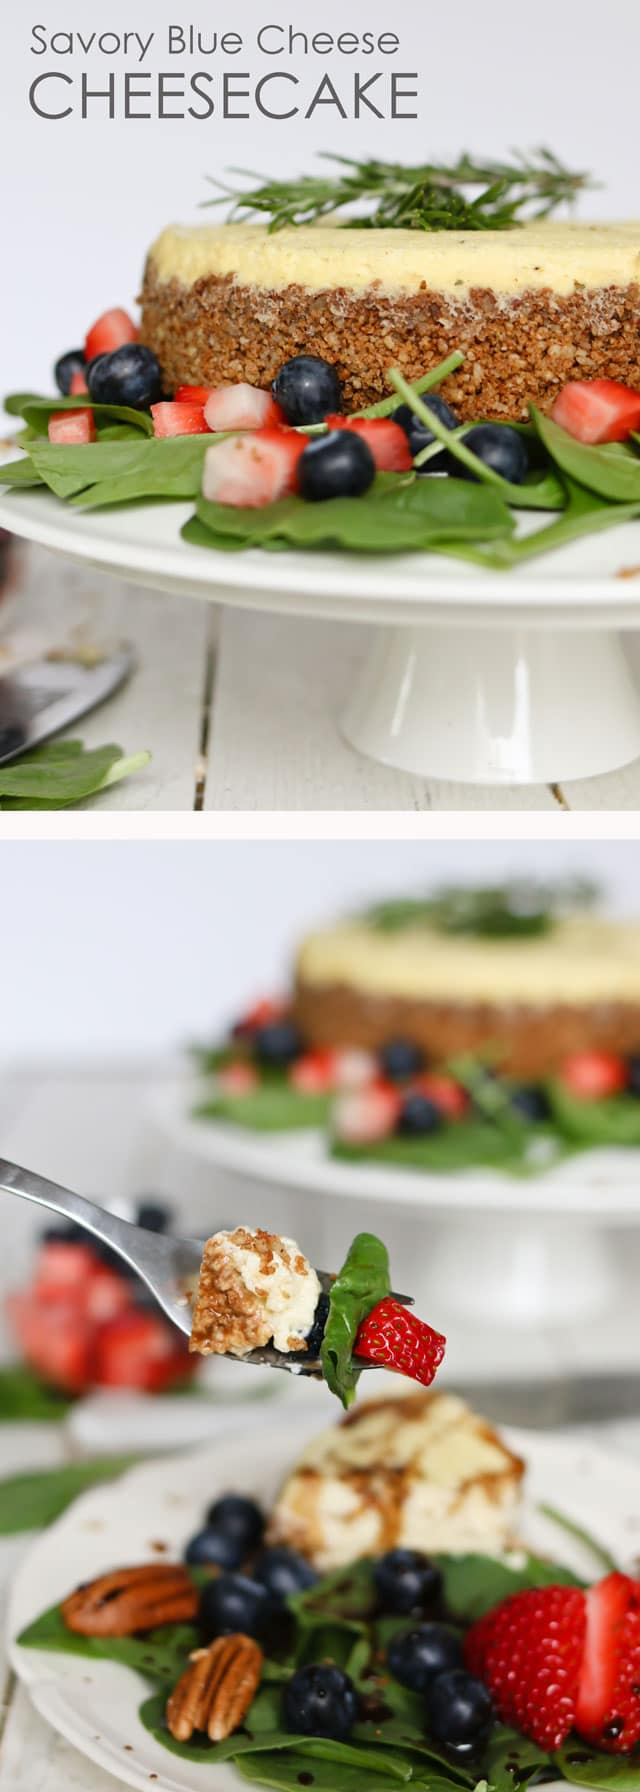 titled photo collage - Savory Blue Cheese Cheesecake